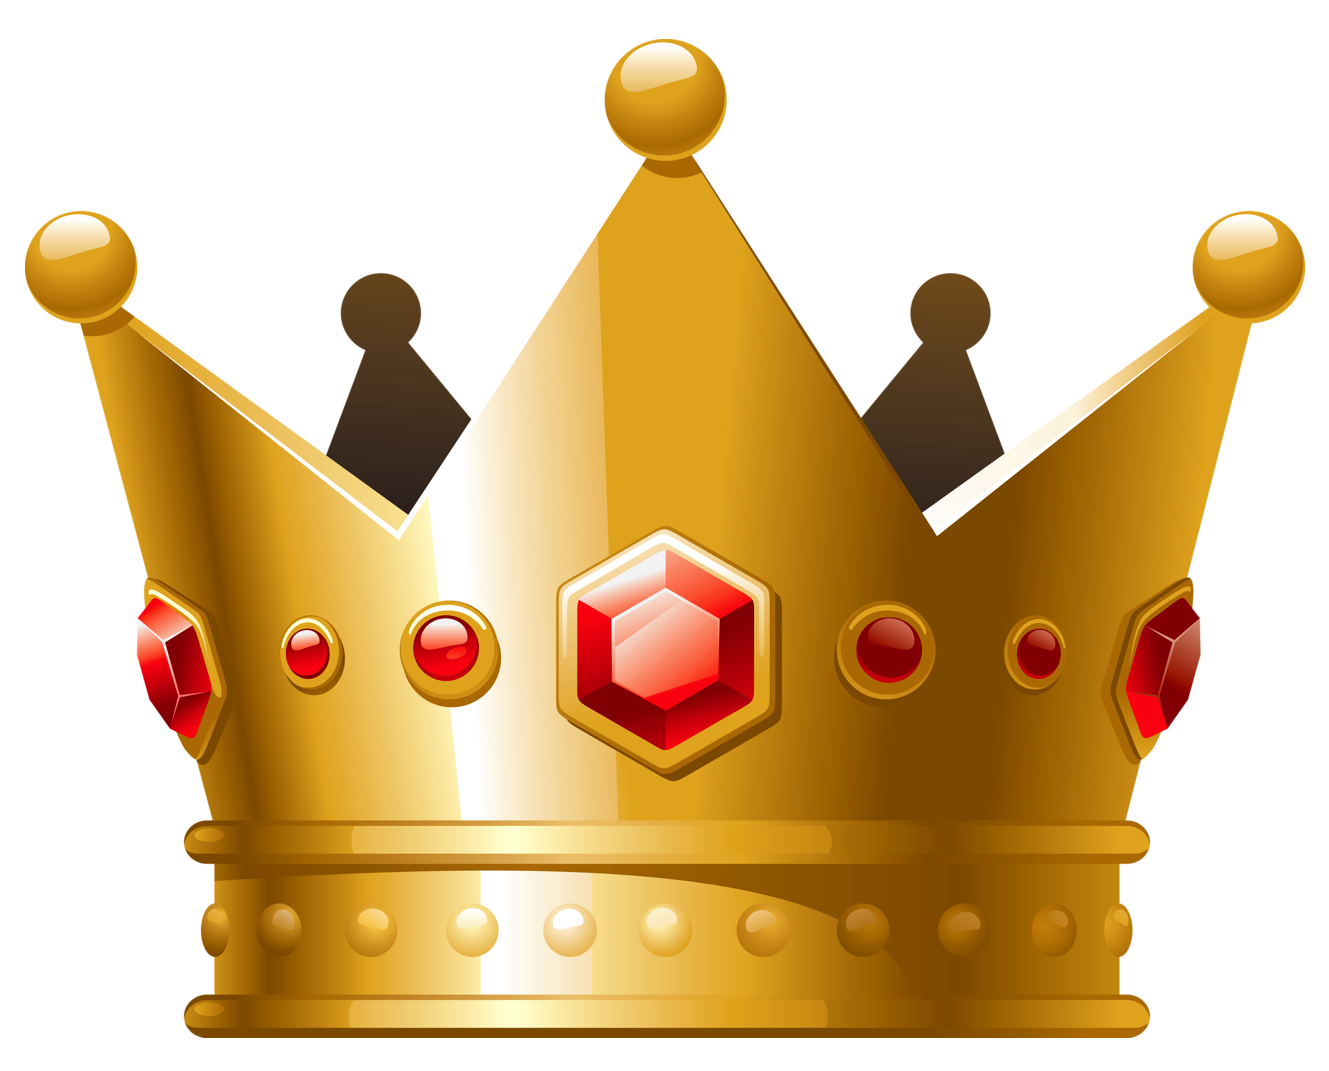 Crown with iron cross clipart clip download Crown transparent crown image with transparent background 2 | Crowns ... clip download